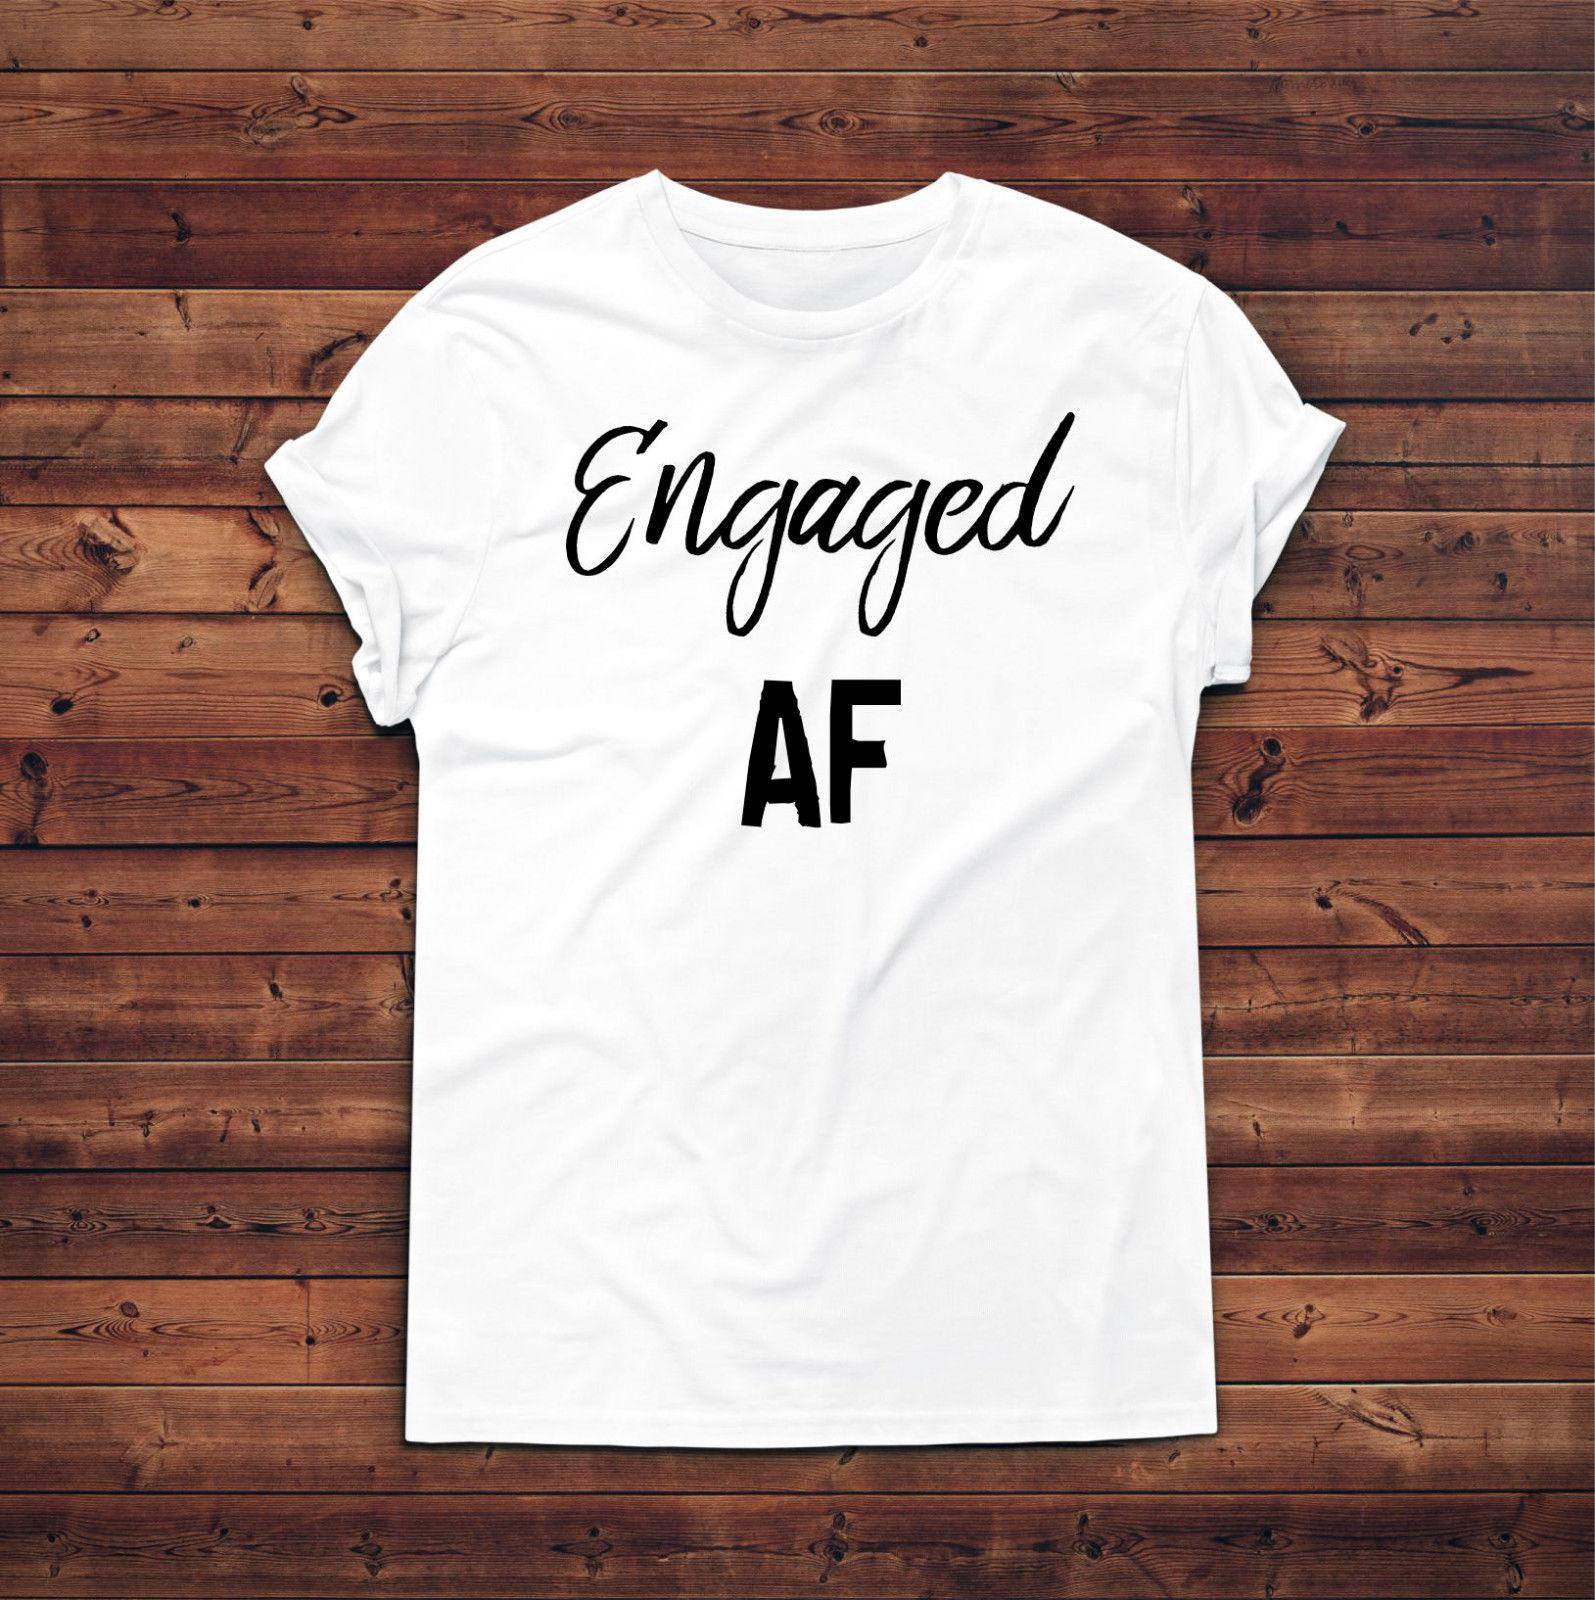 a74d3a1851 Engaged AF T Shirt, Marriage T-shirt, Bridal Shirt, Wedding Tshirt,  Engagement Funny free shipping Unisex tee